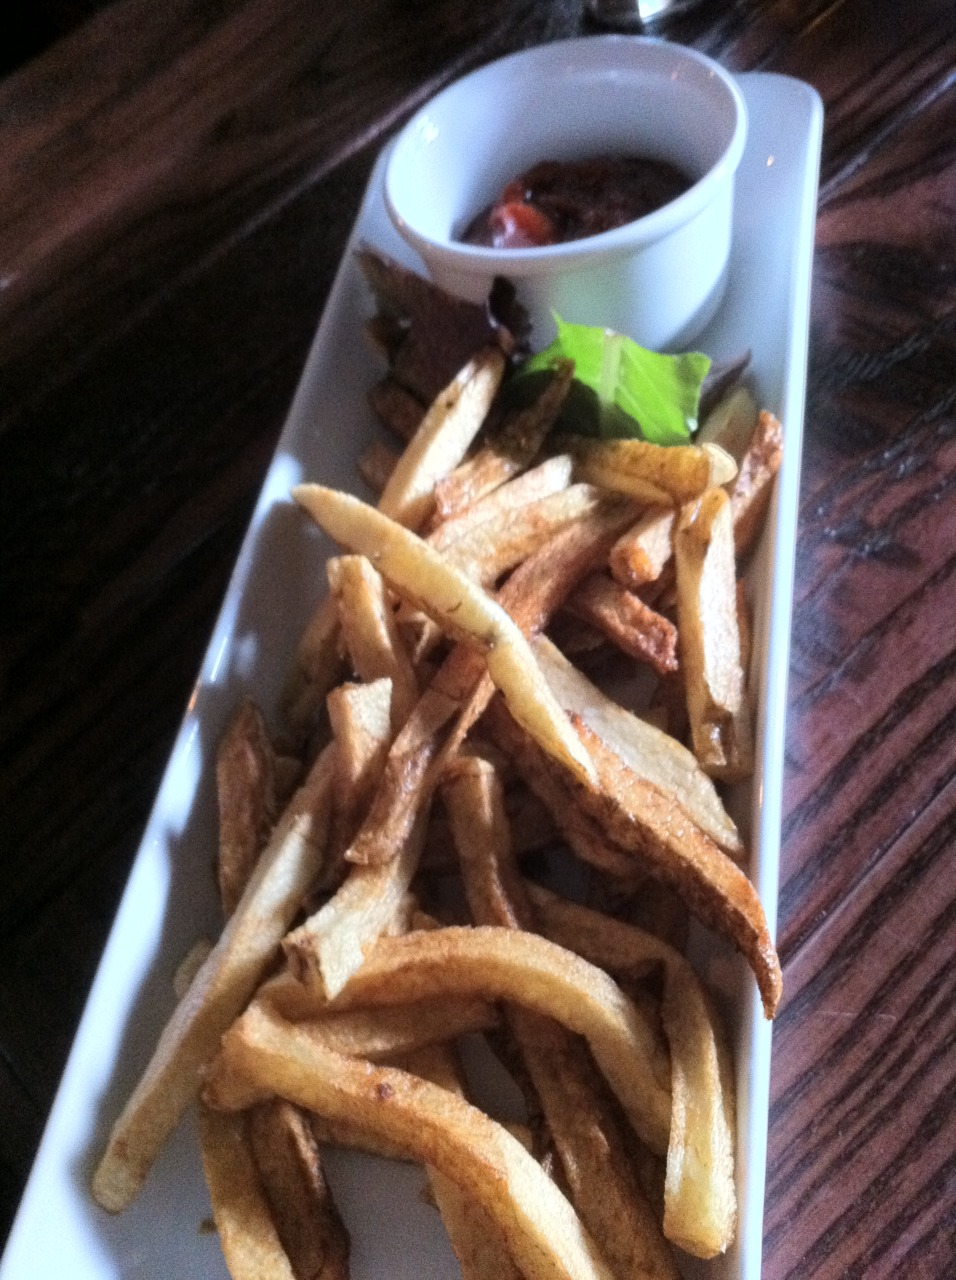 Duck Fat Fries @ The Public House, Norfolk, VA. These were good with the smokey ketchup (chipotle.) http://www.publichouseeats.com/